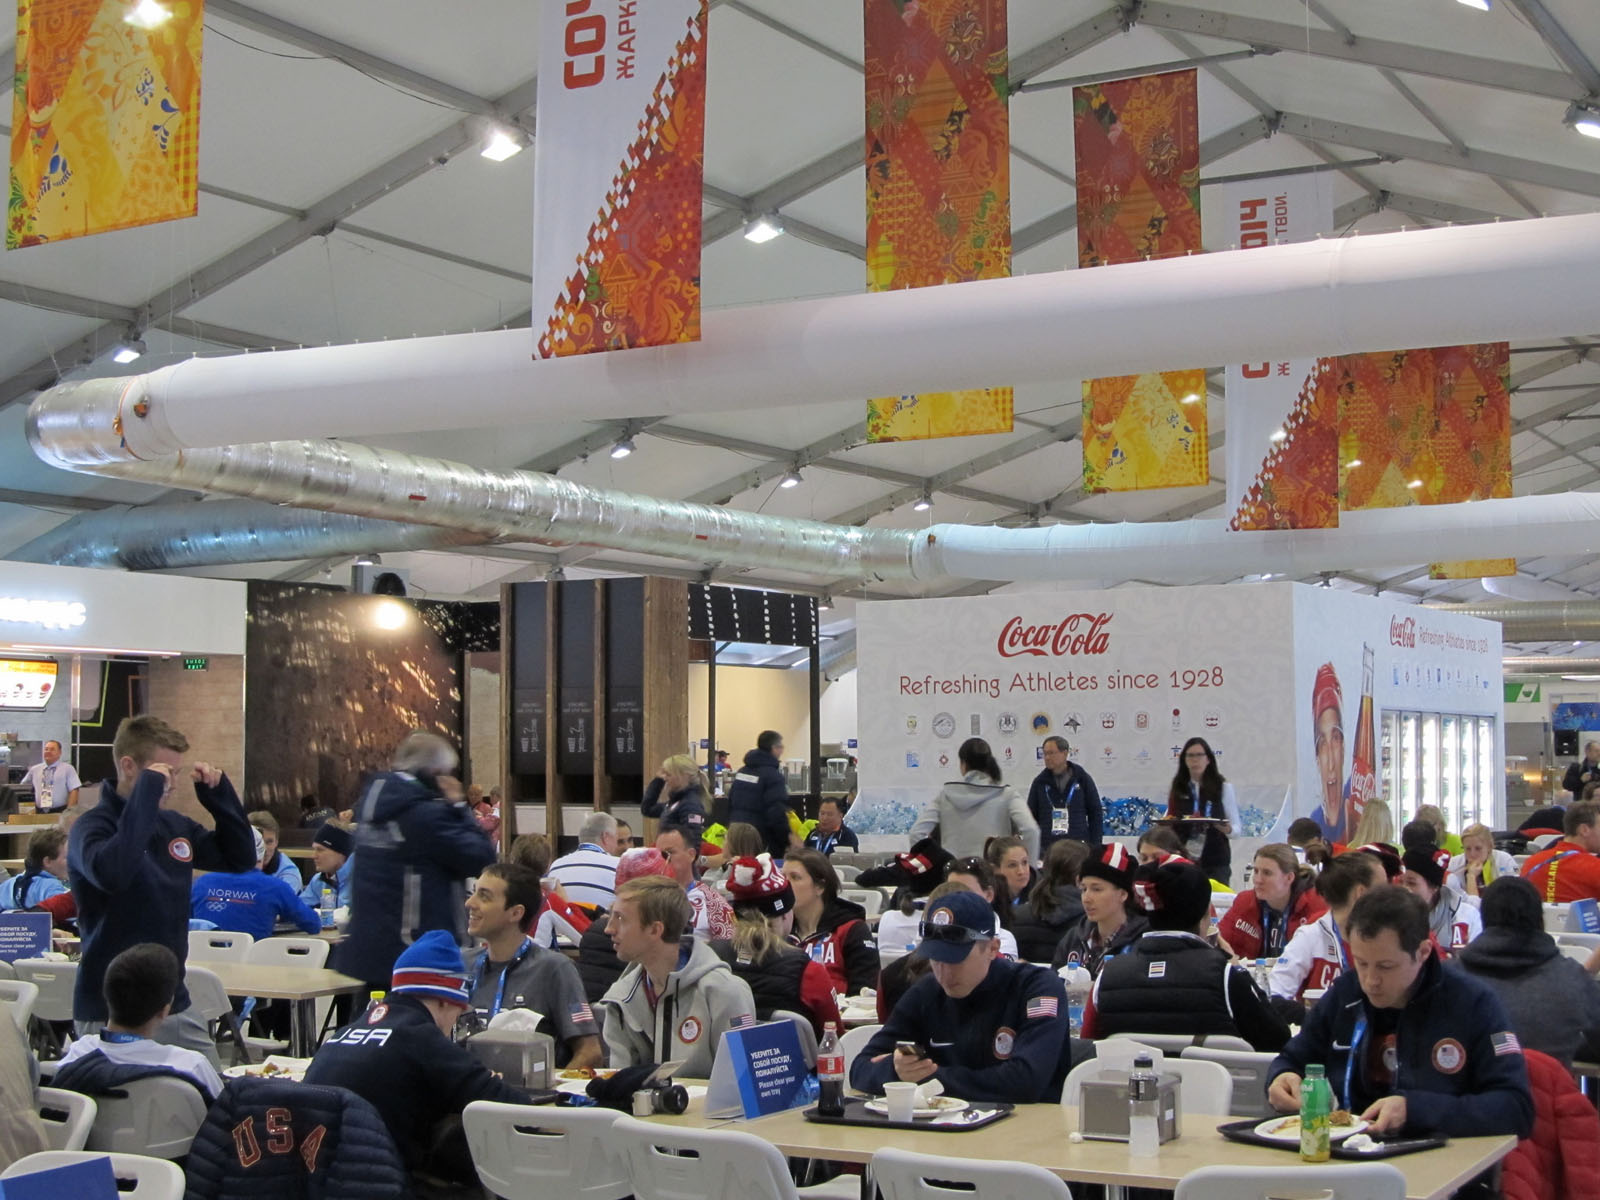 Sochi Athletes Village Dining Hall